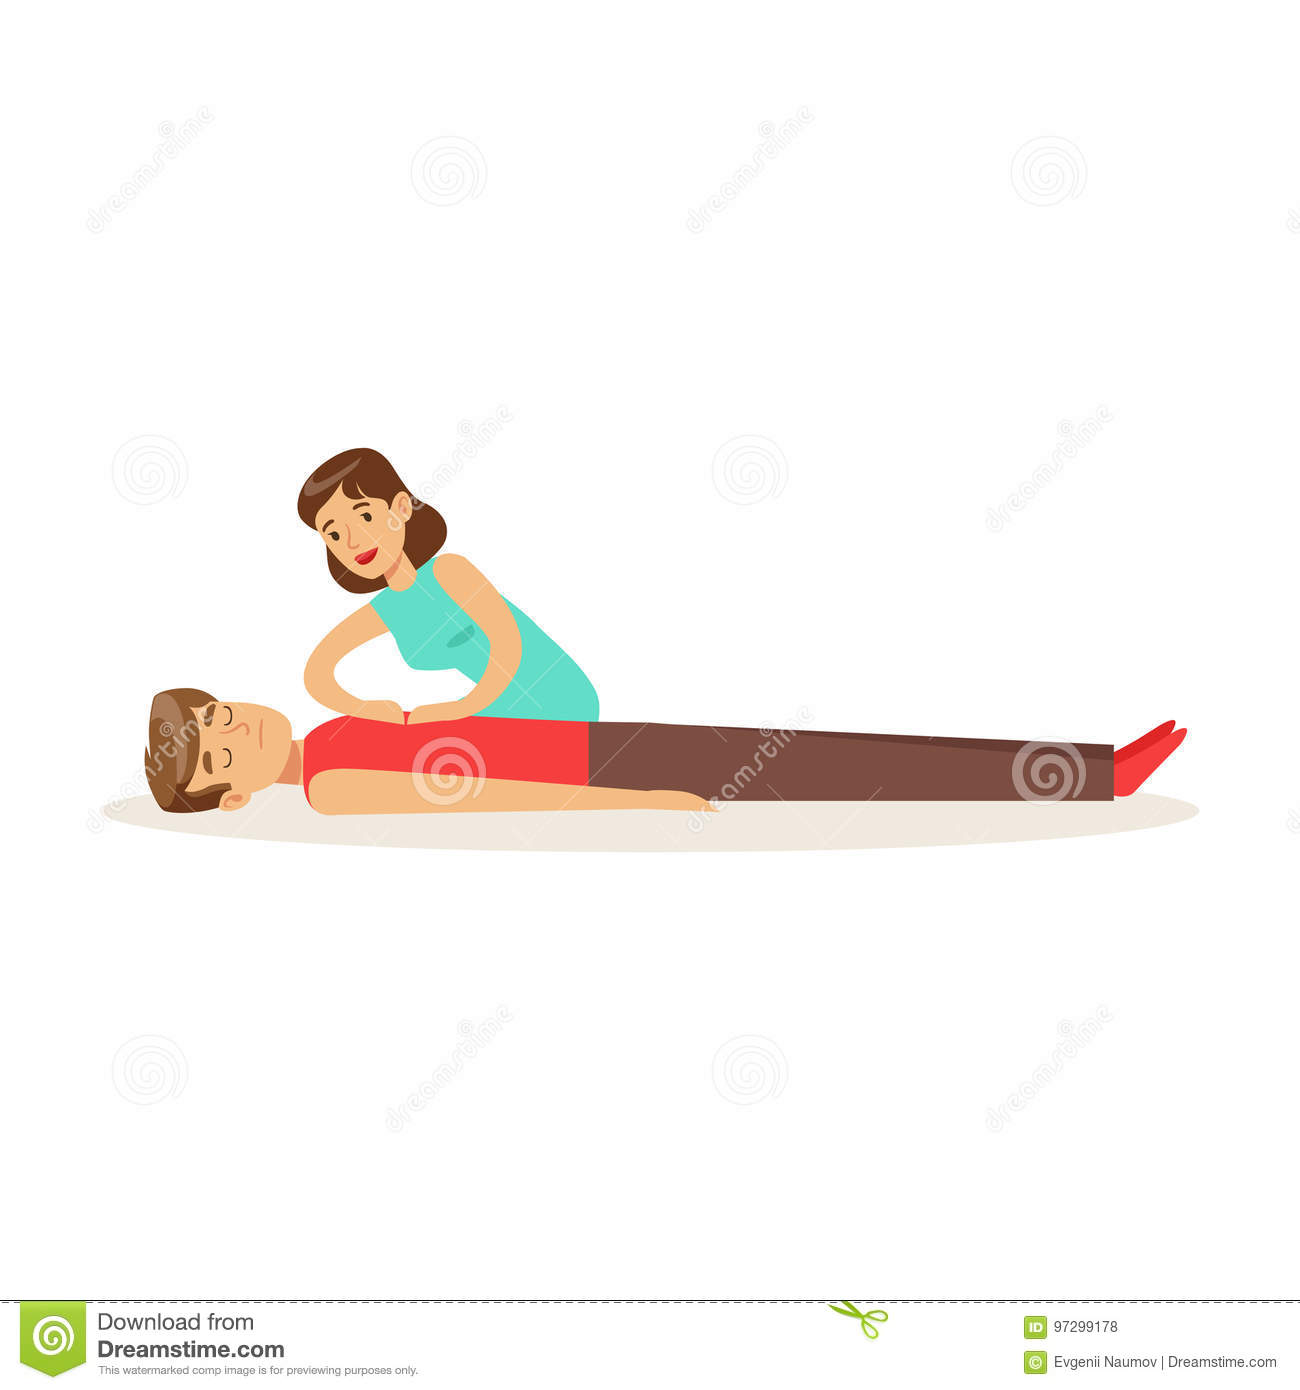 Woman giving a CPR cardiac massage for breathless man, reanimation procedure first aid vector Illustration